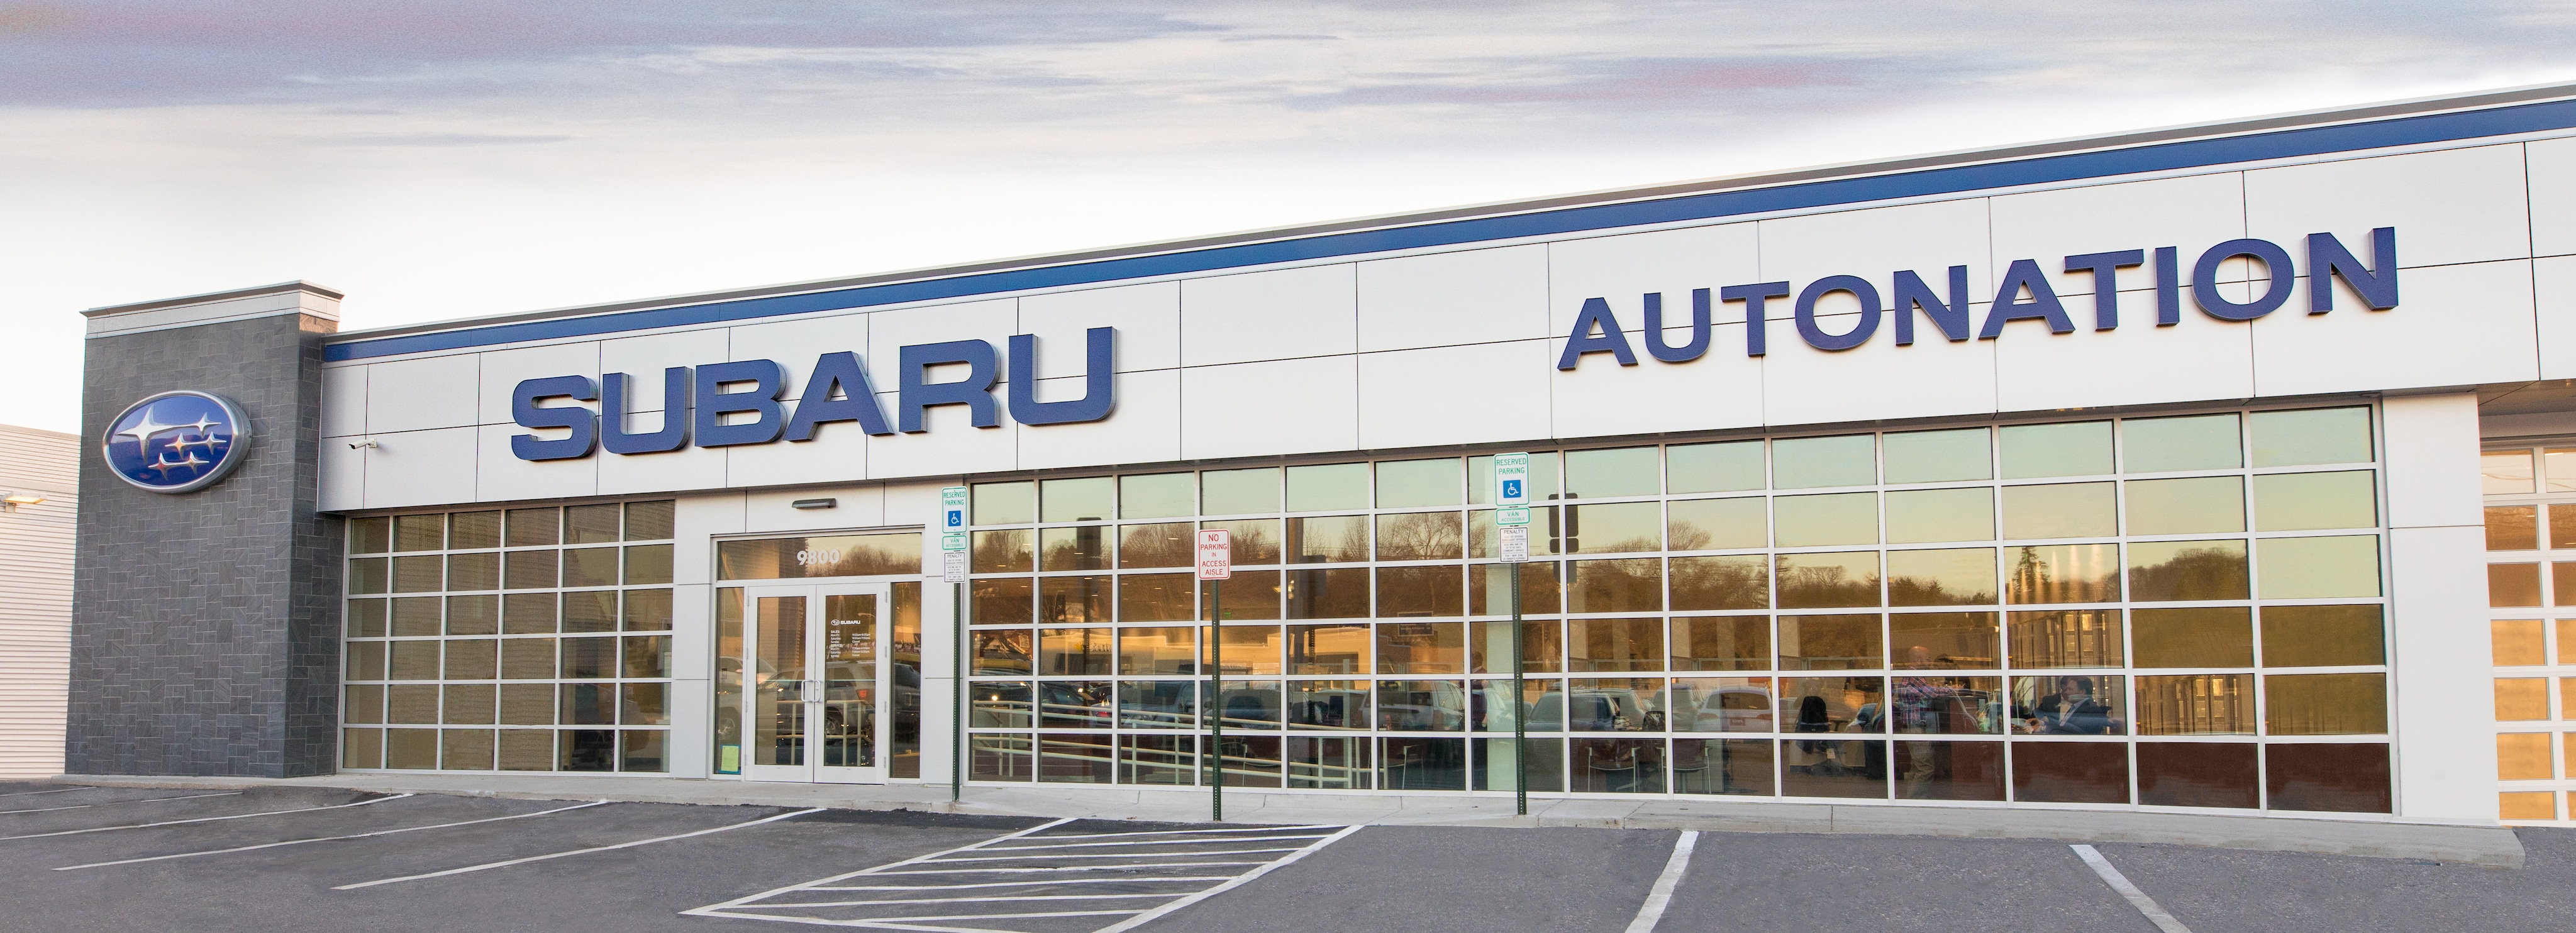 Auto Nation Subaru >> Cockeysville Subaru Dealer Autonation Subaru Hunt Valley